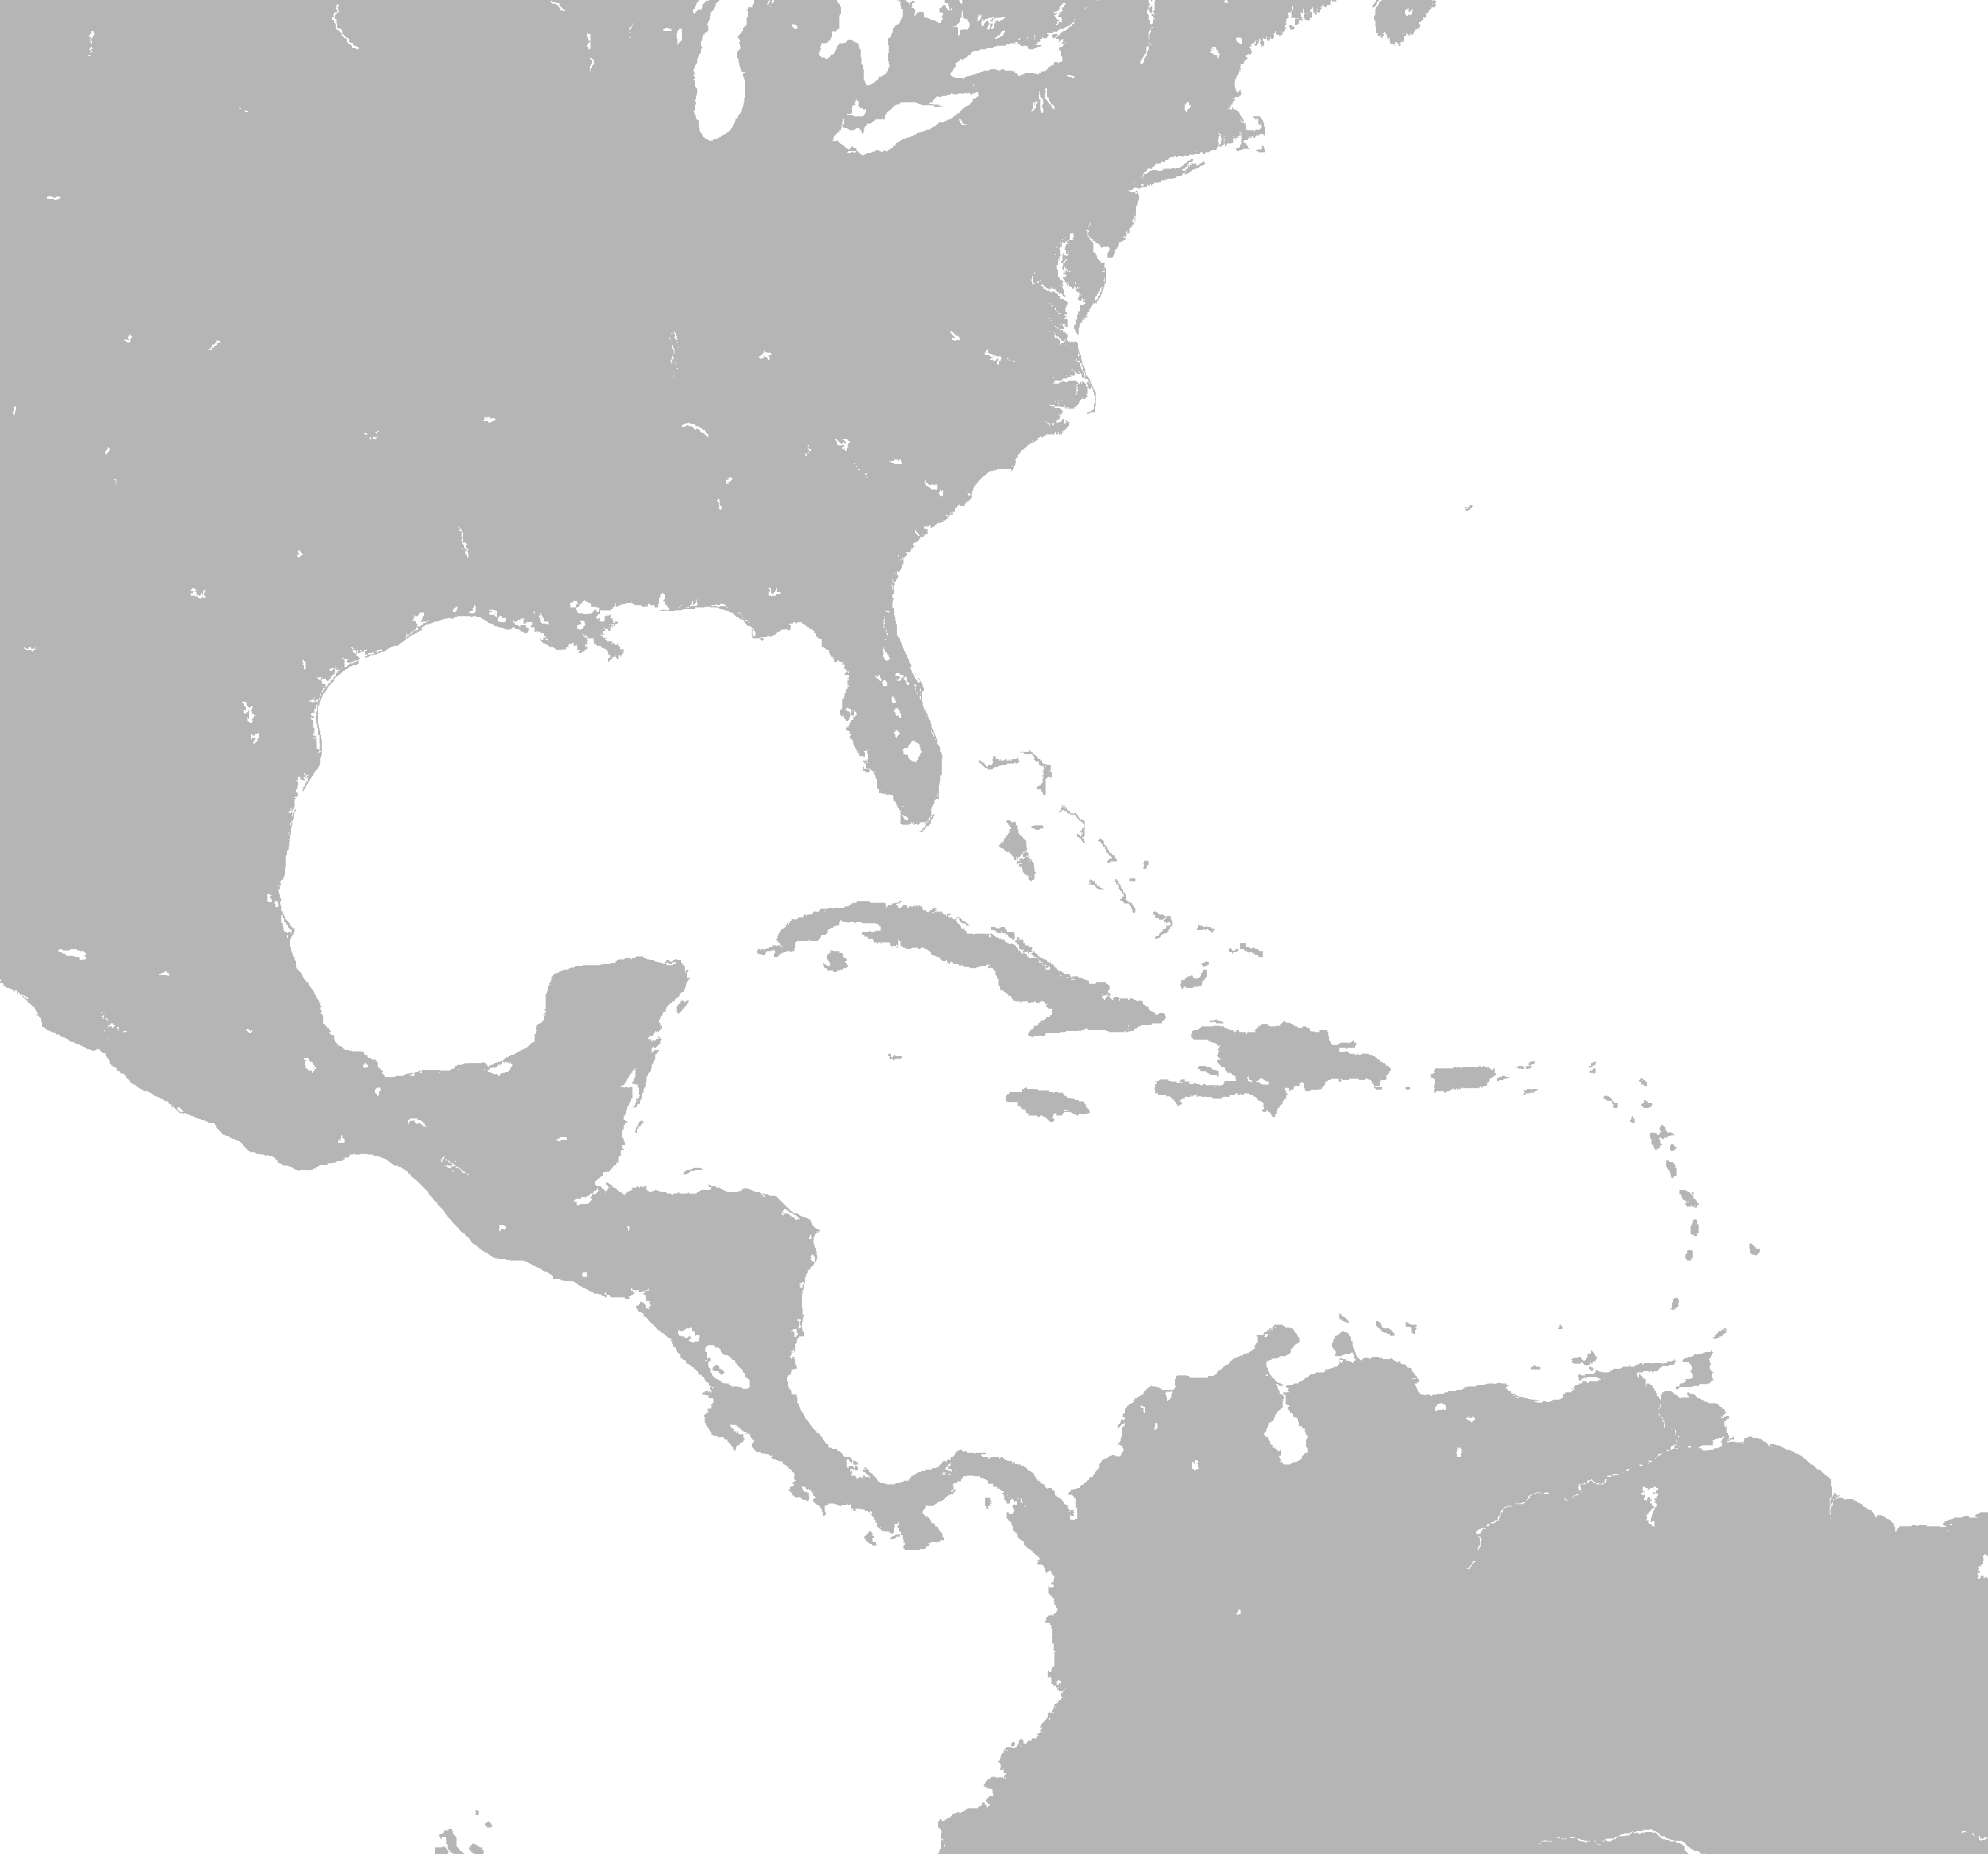 File:Caribbean map blank.png.